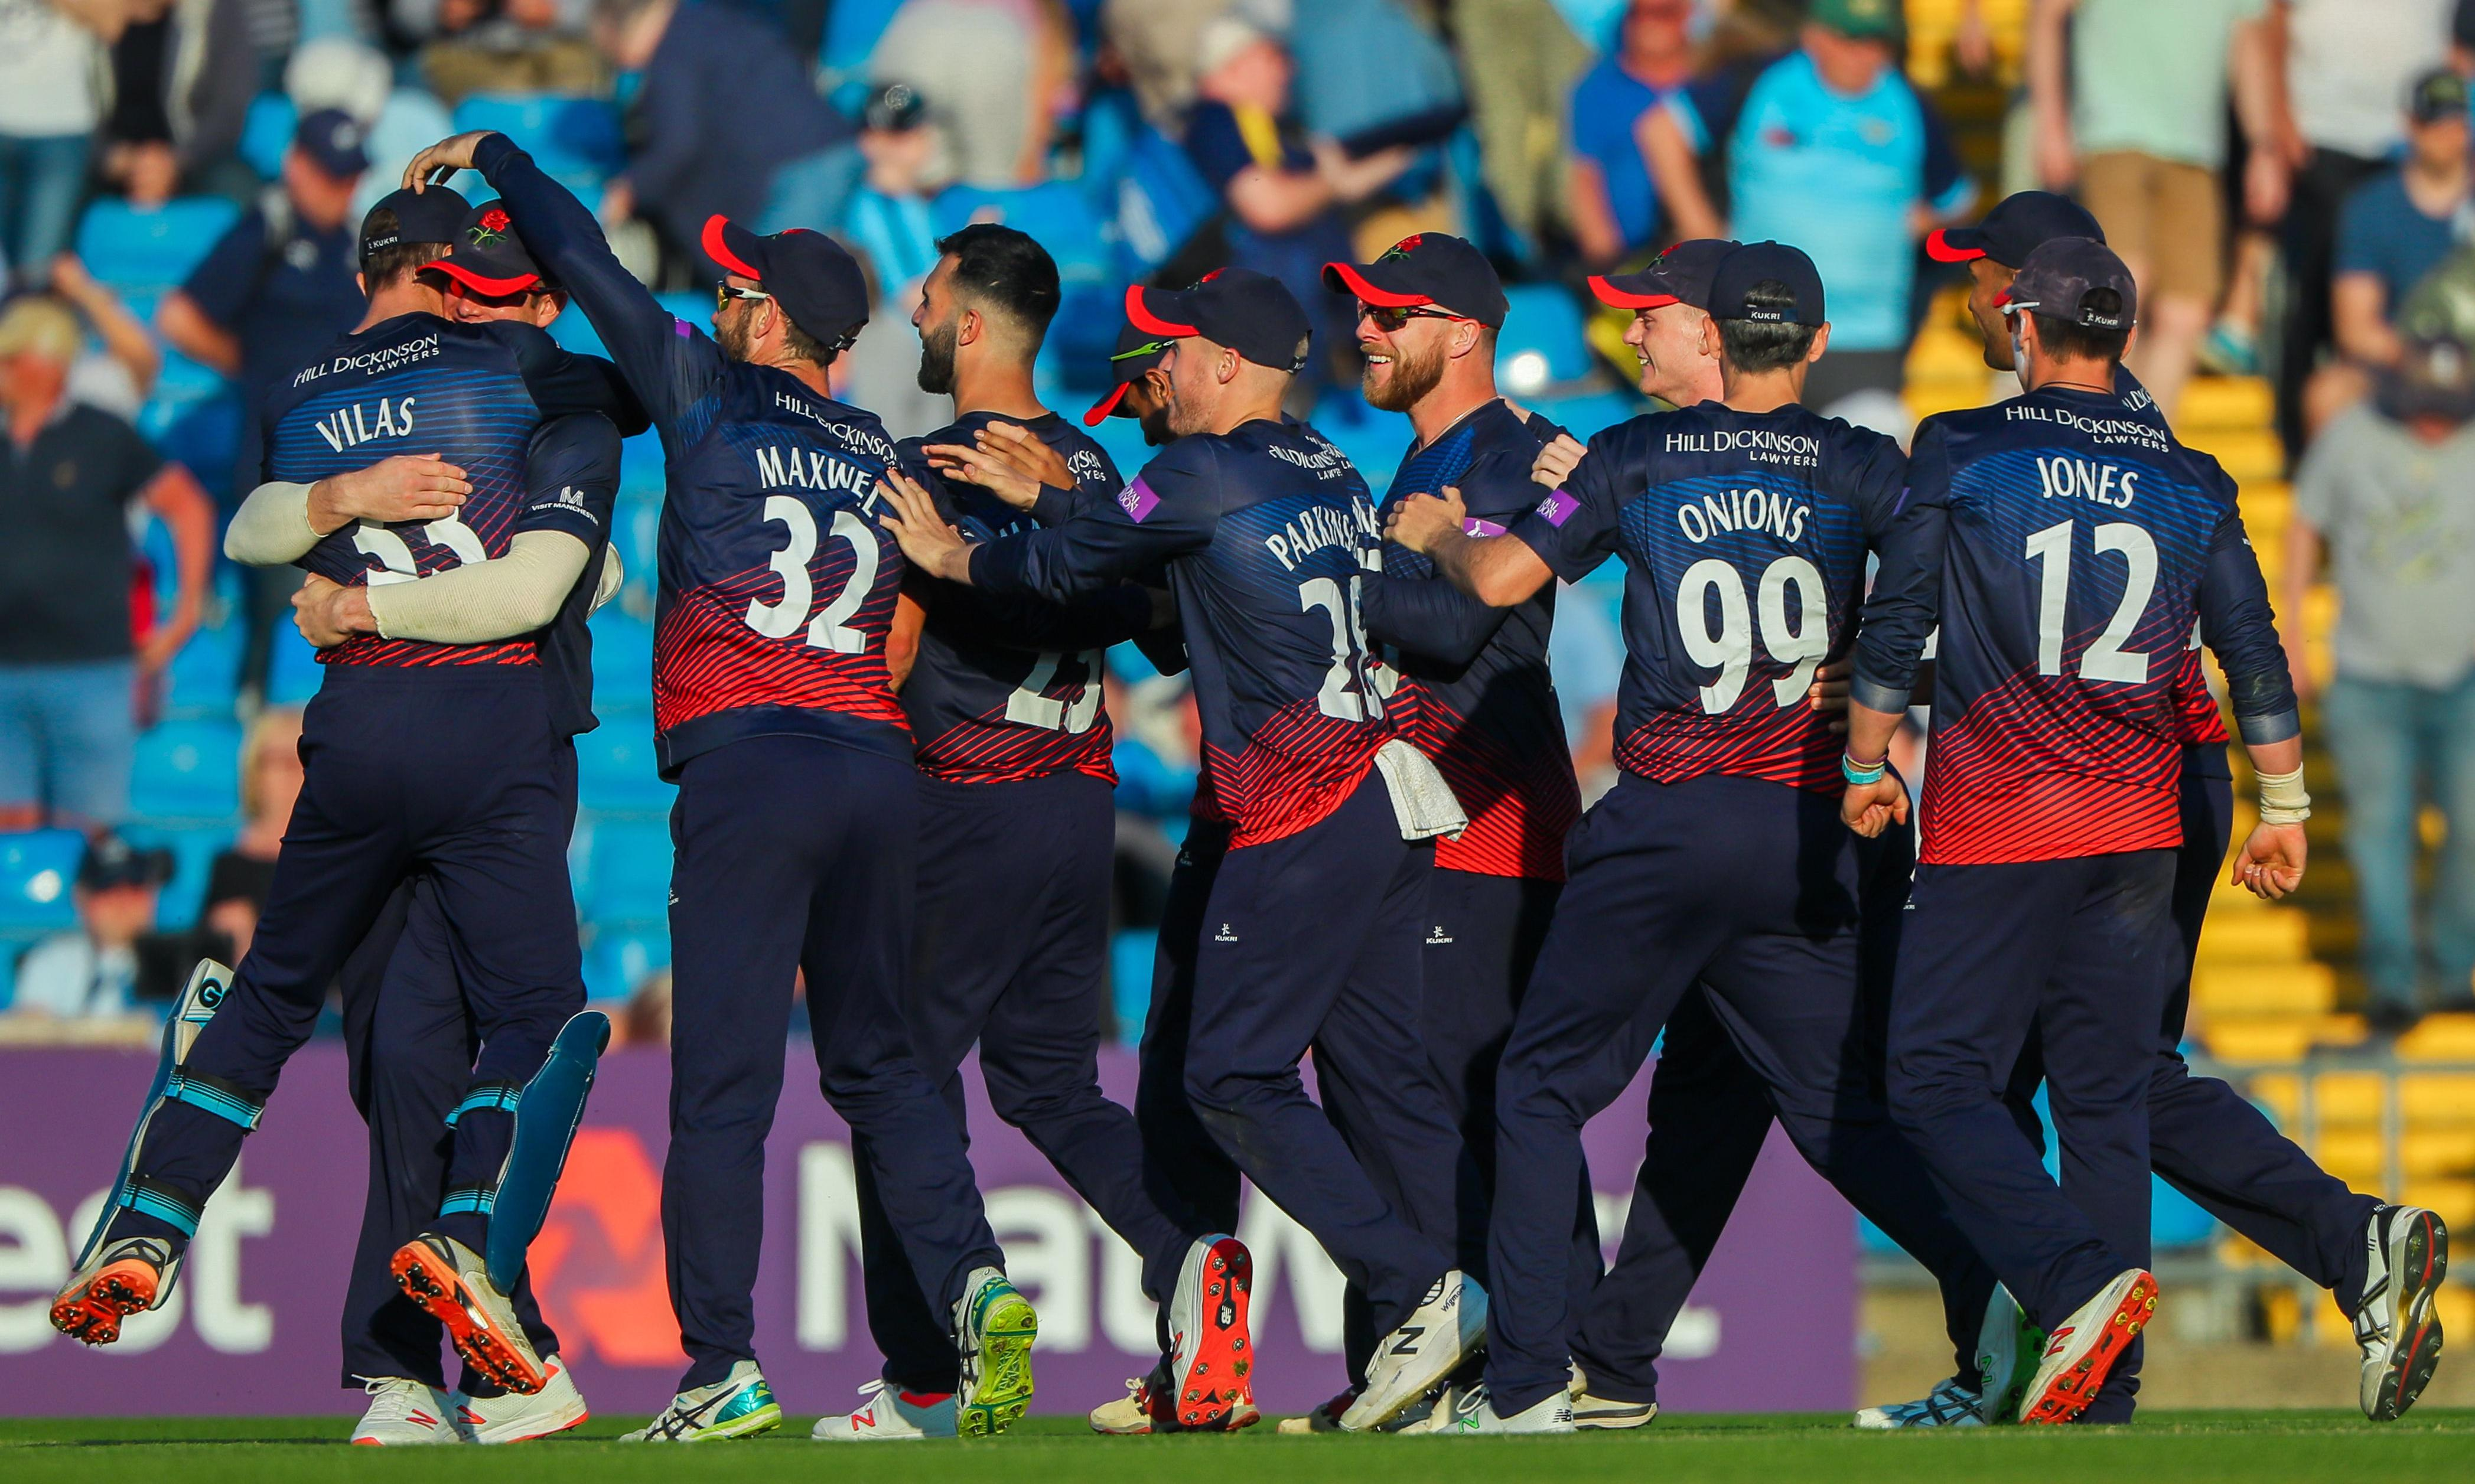 One-Day Cup roundup: Lancashire beat Yorkshire by one run in thriller